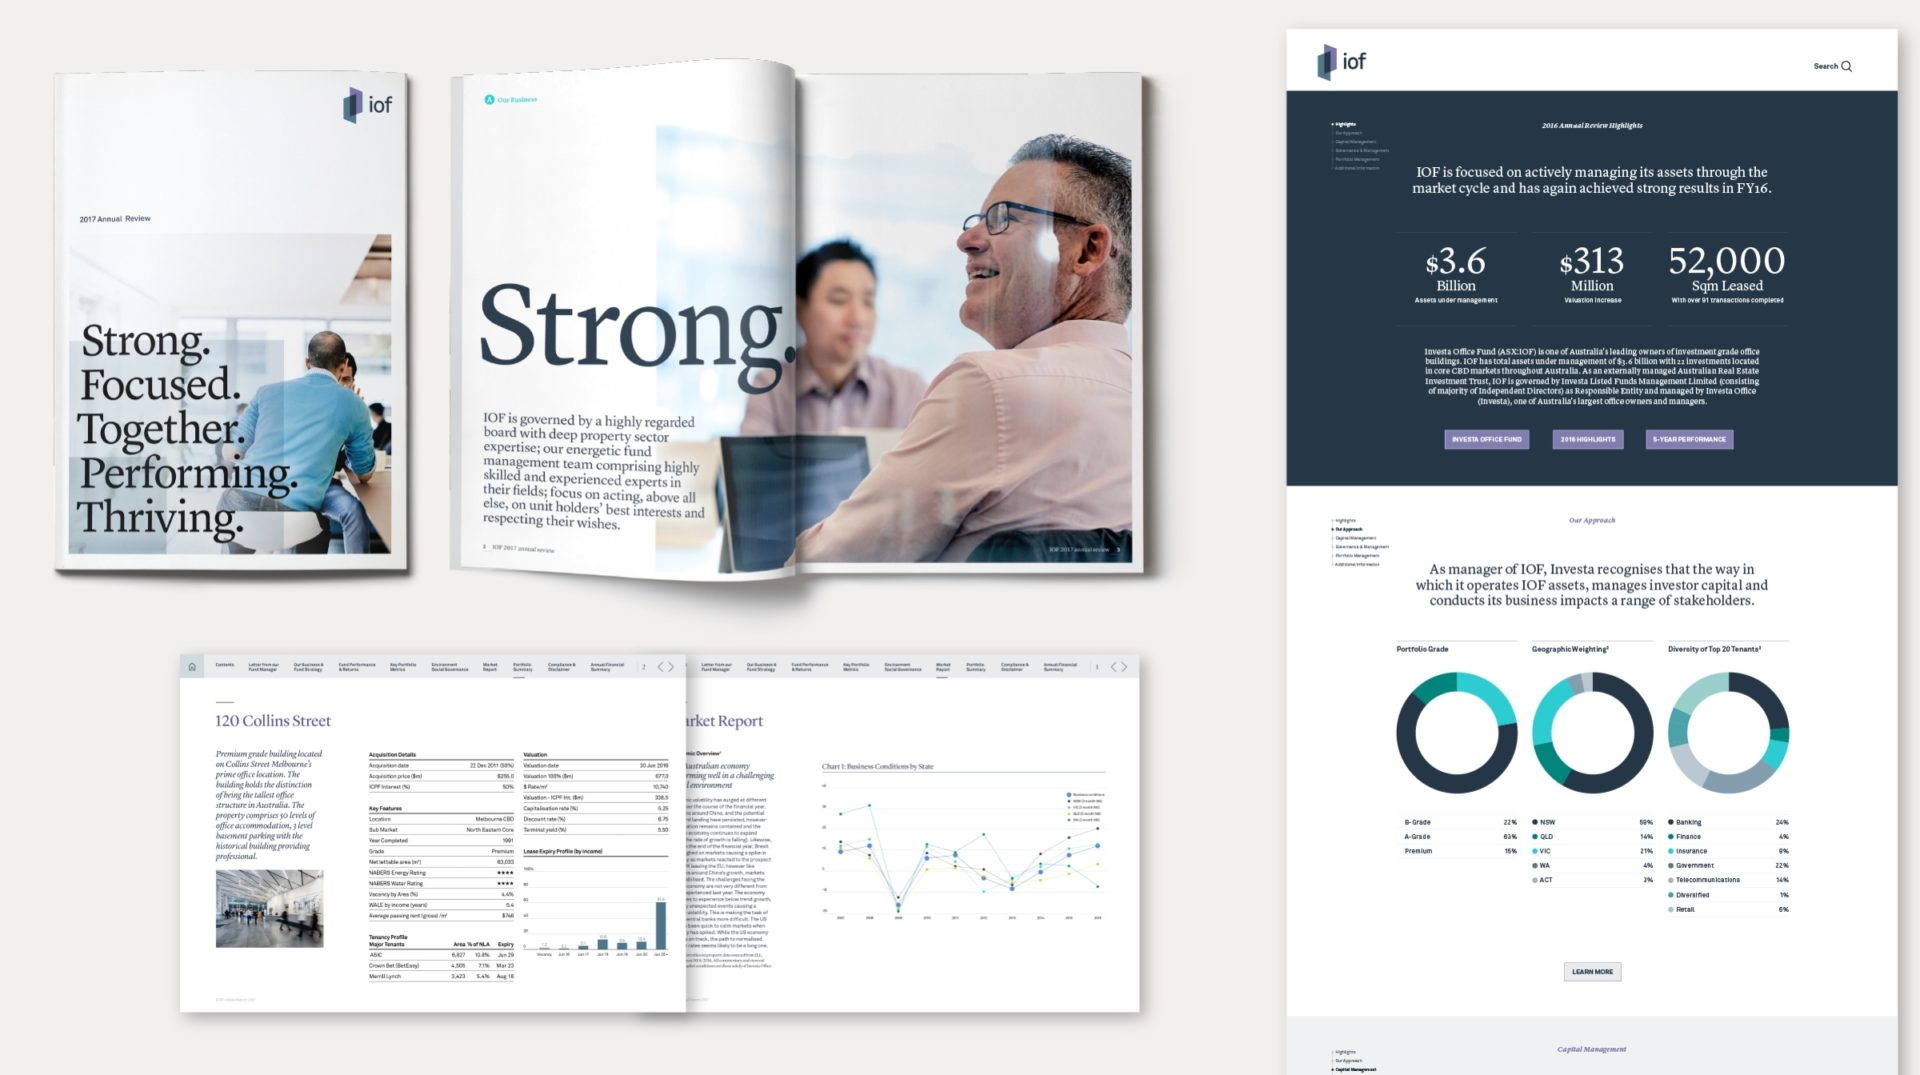 A brochure, financial presentation and website for Investa's IOF fund